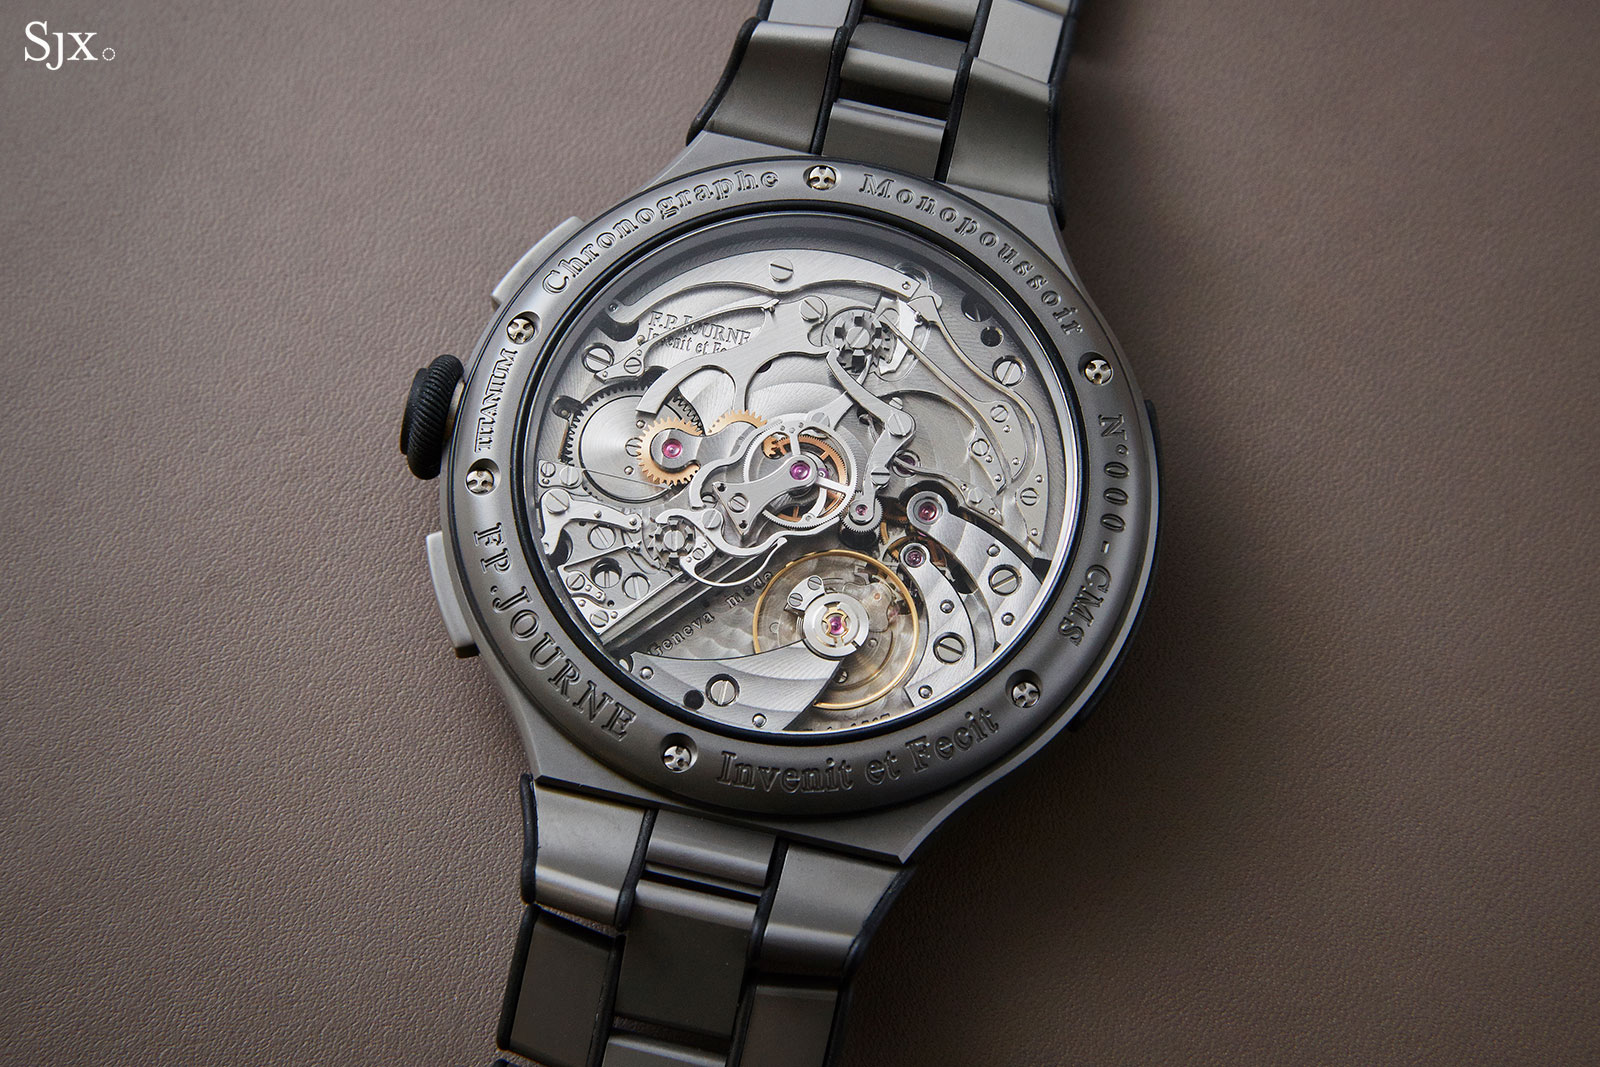 FP Journe Linesport Chronograph split seconds titanium 3